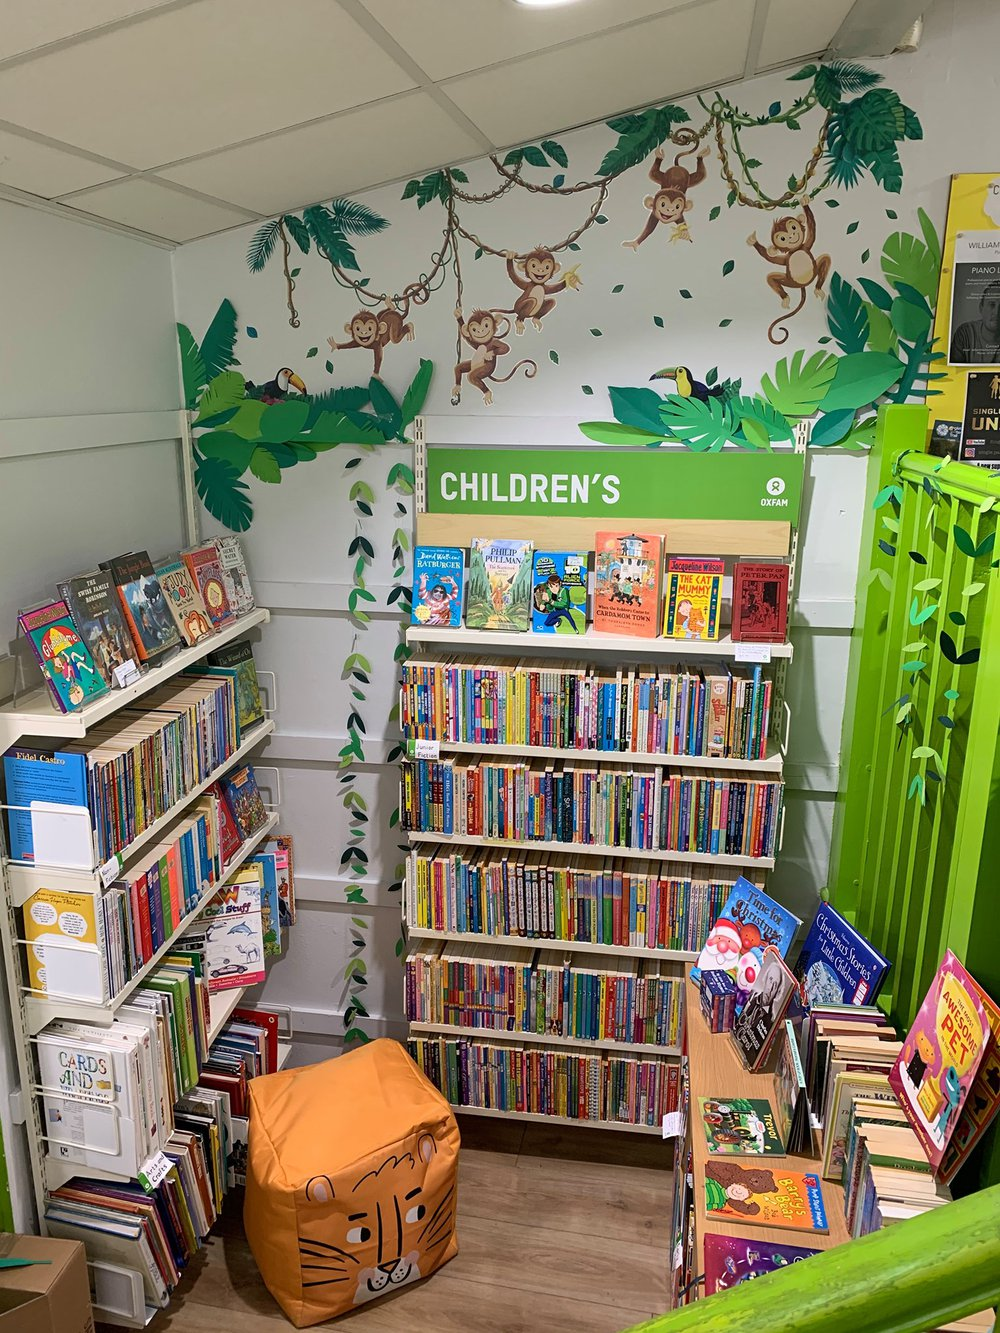 Oxfam Preston's children's books section with new monkey mural on the wall and a toget foot cushion on the floor